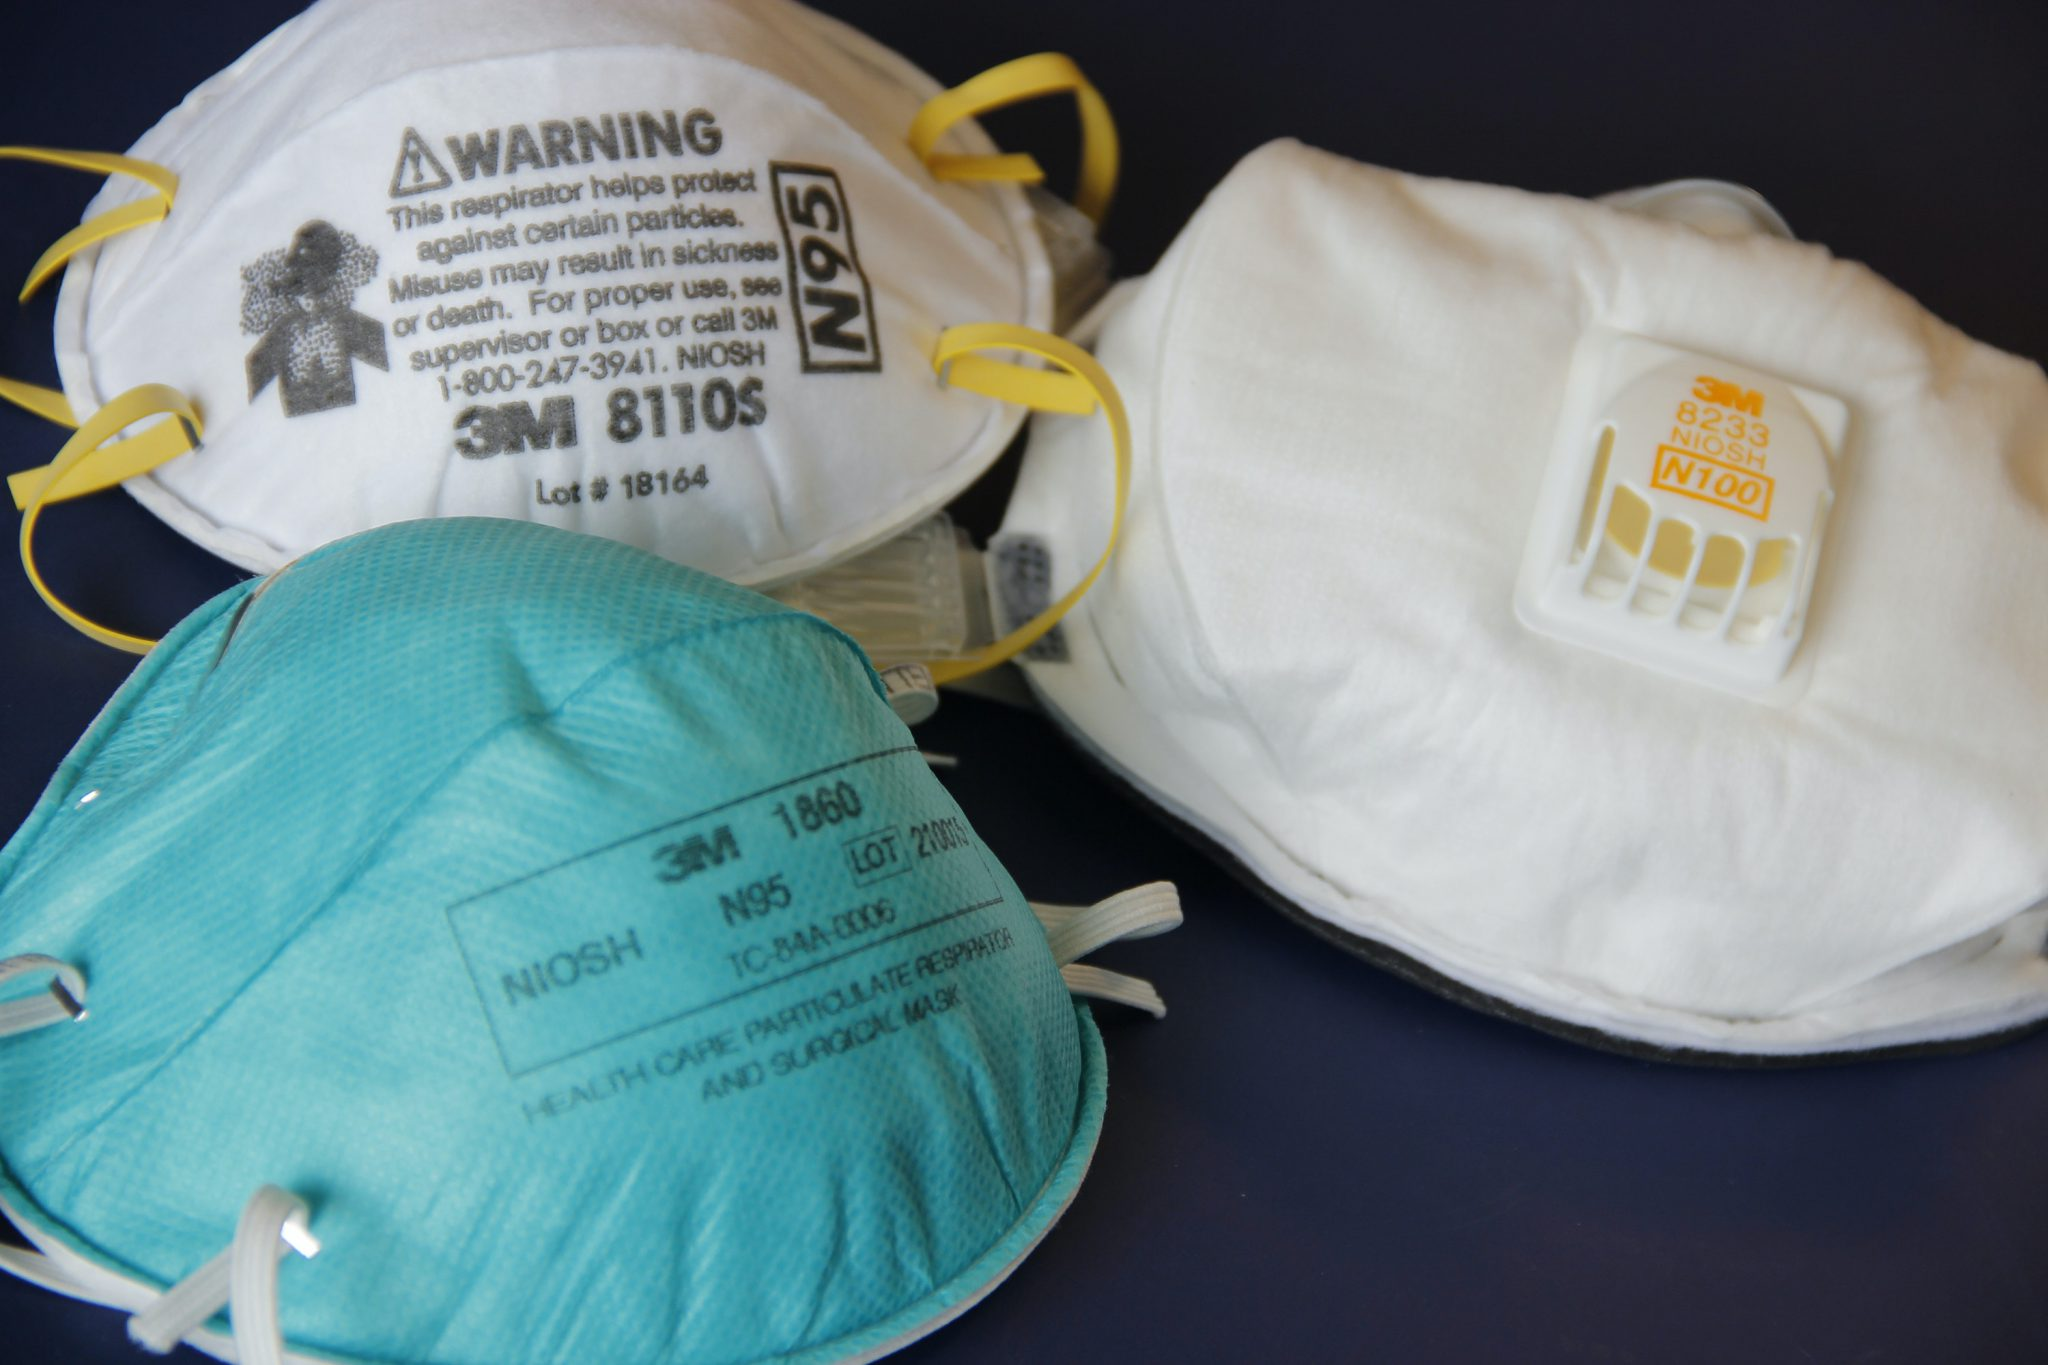 Personal protective equipment like N95 masks (shown here) are in short supply for most departments.